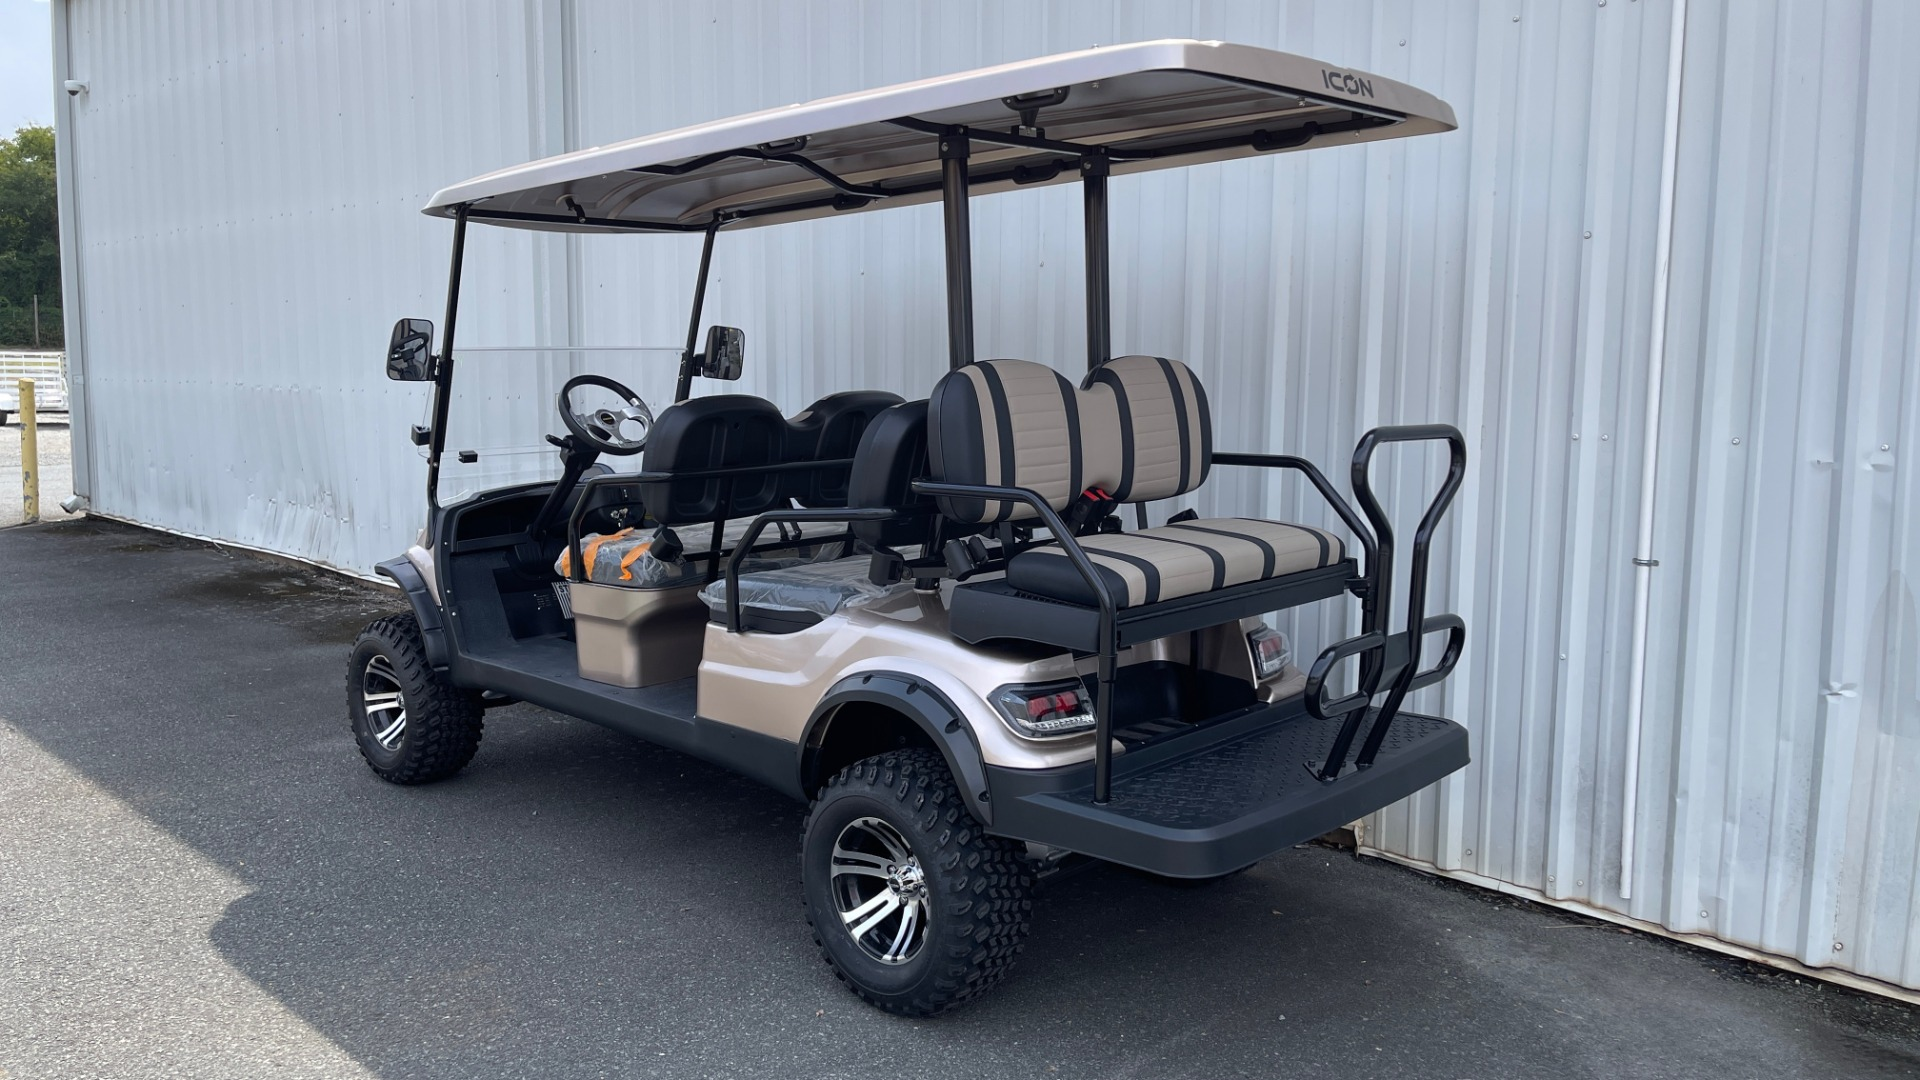 Used 2021 ICON I60L LIFTED ELECTRIC CAR / 6-PASSENGER GOLF CART / 25MPH / NEW / 1-MILE for sale $11,399 at Formula Imports in Charlotte NC 28227 3